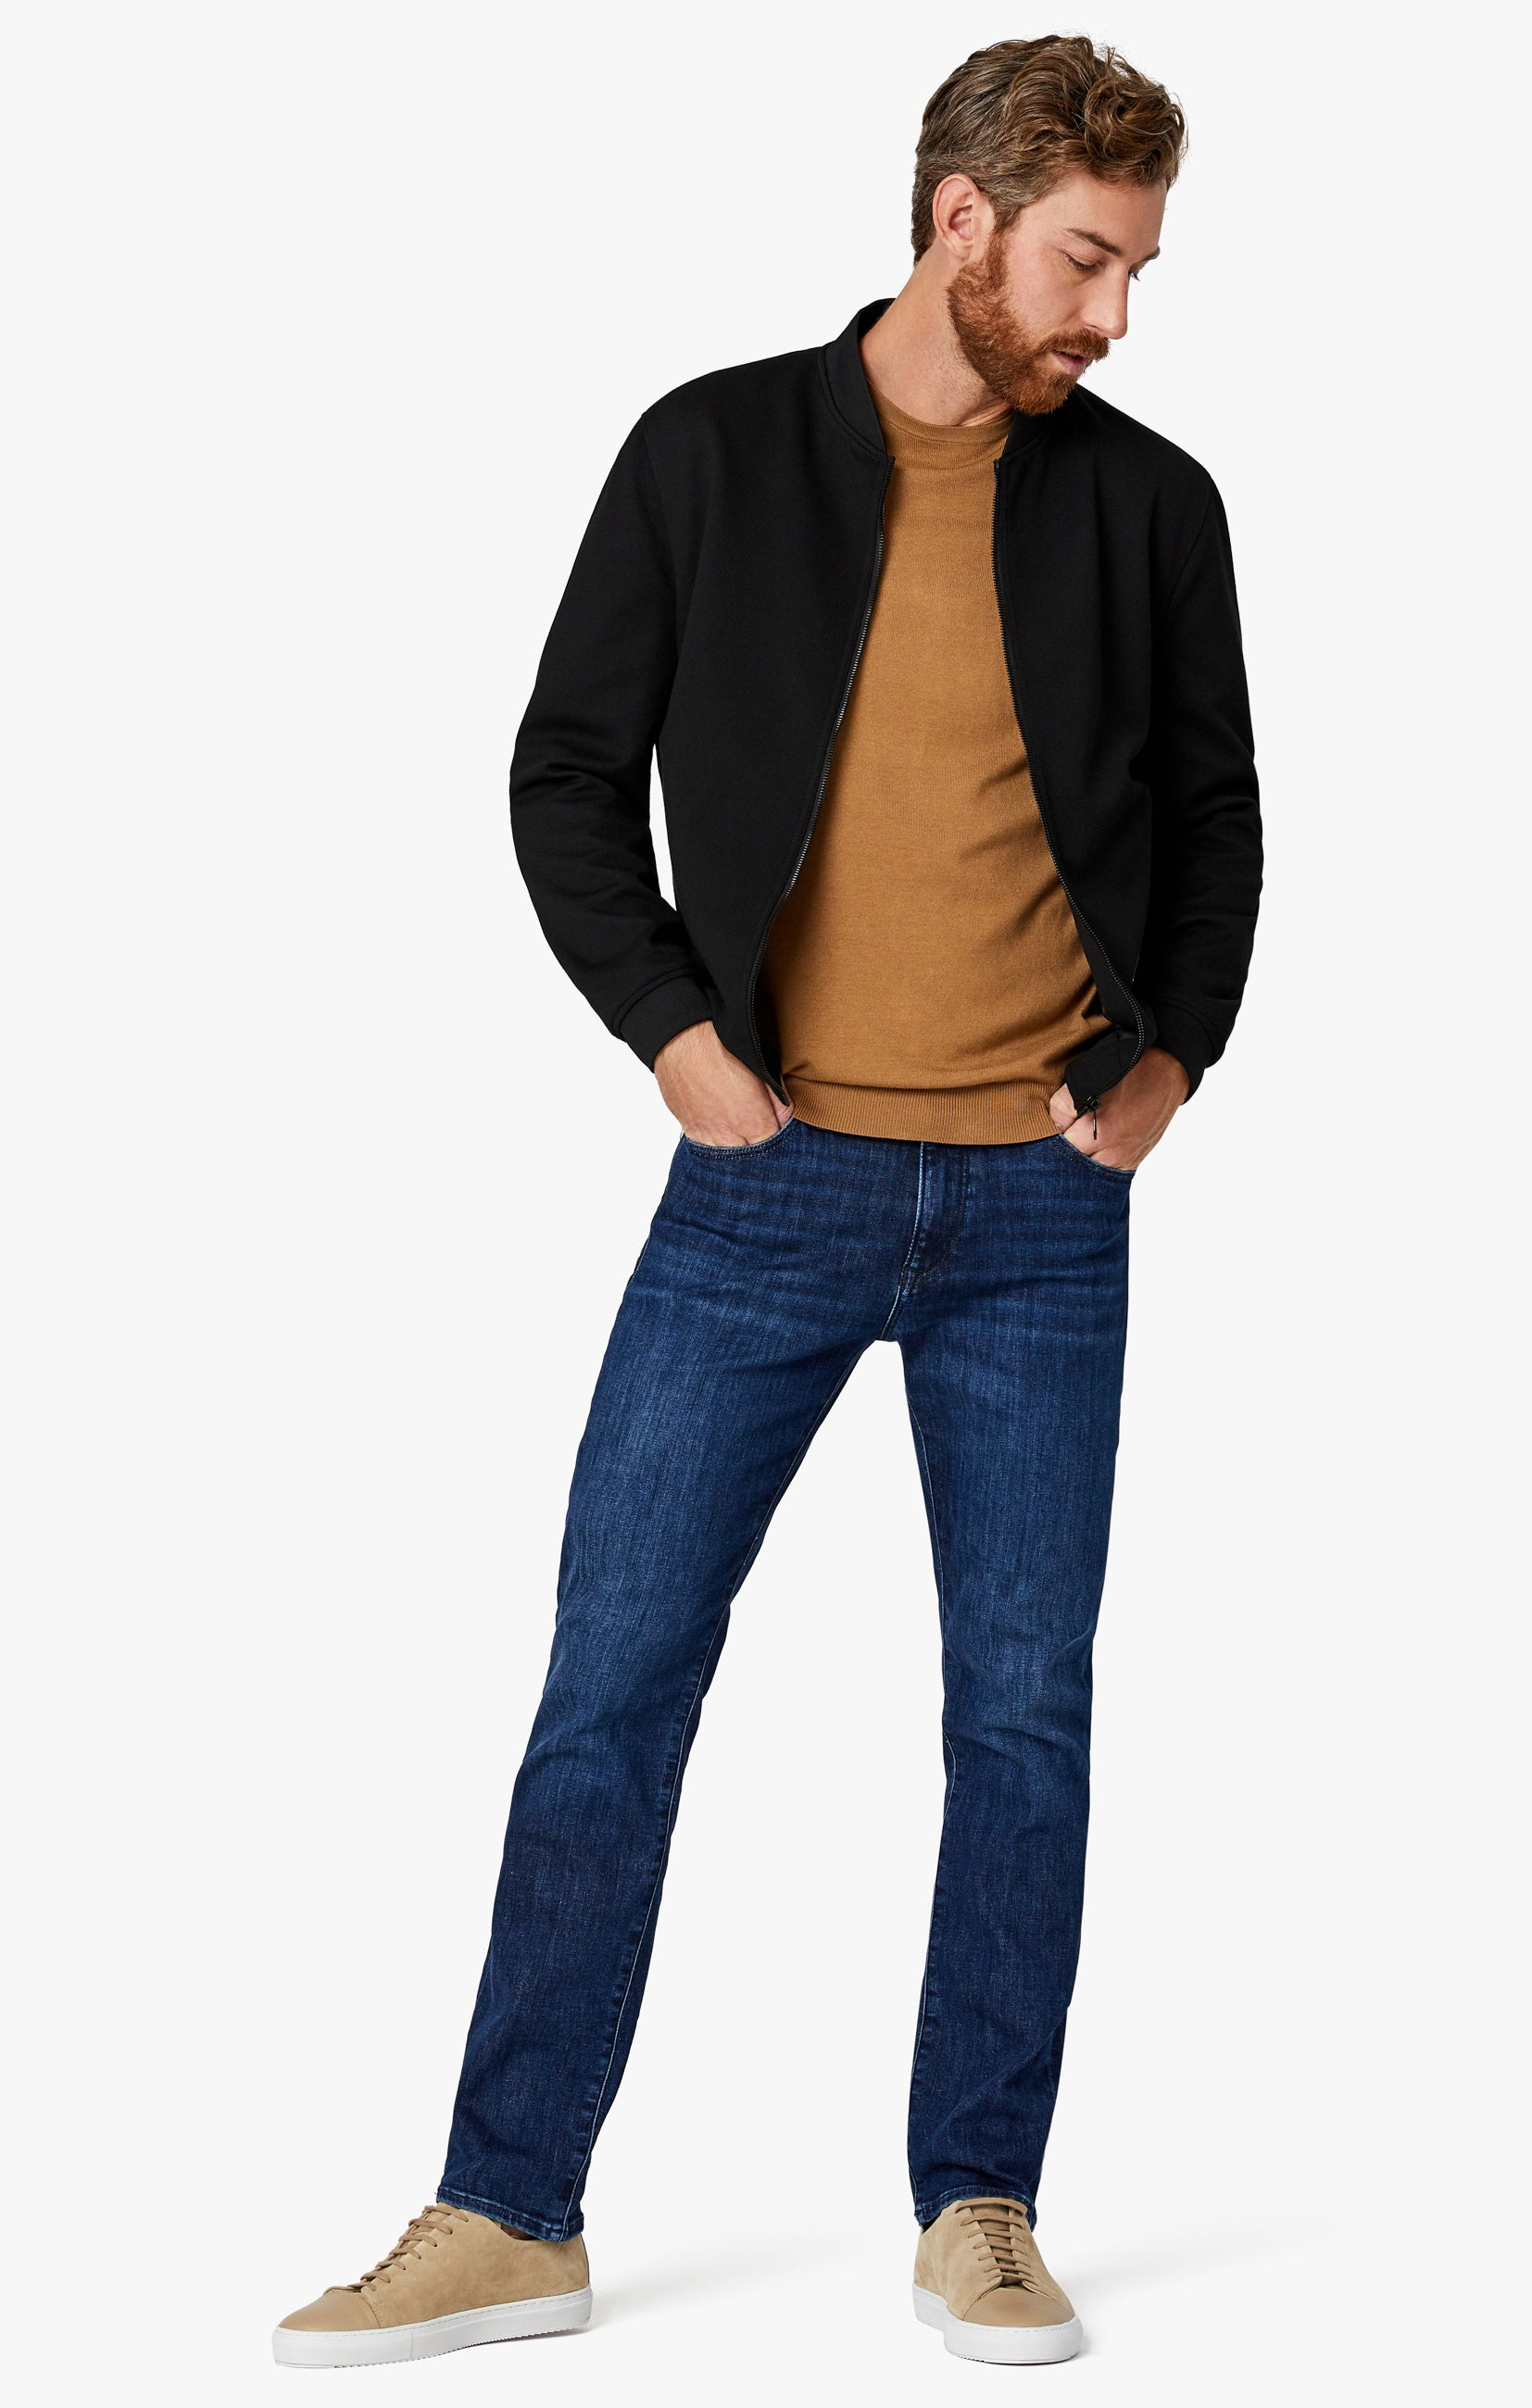 Charisma Classic Fit Jeans in Dark Coolmax Image 2